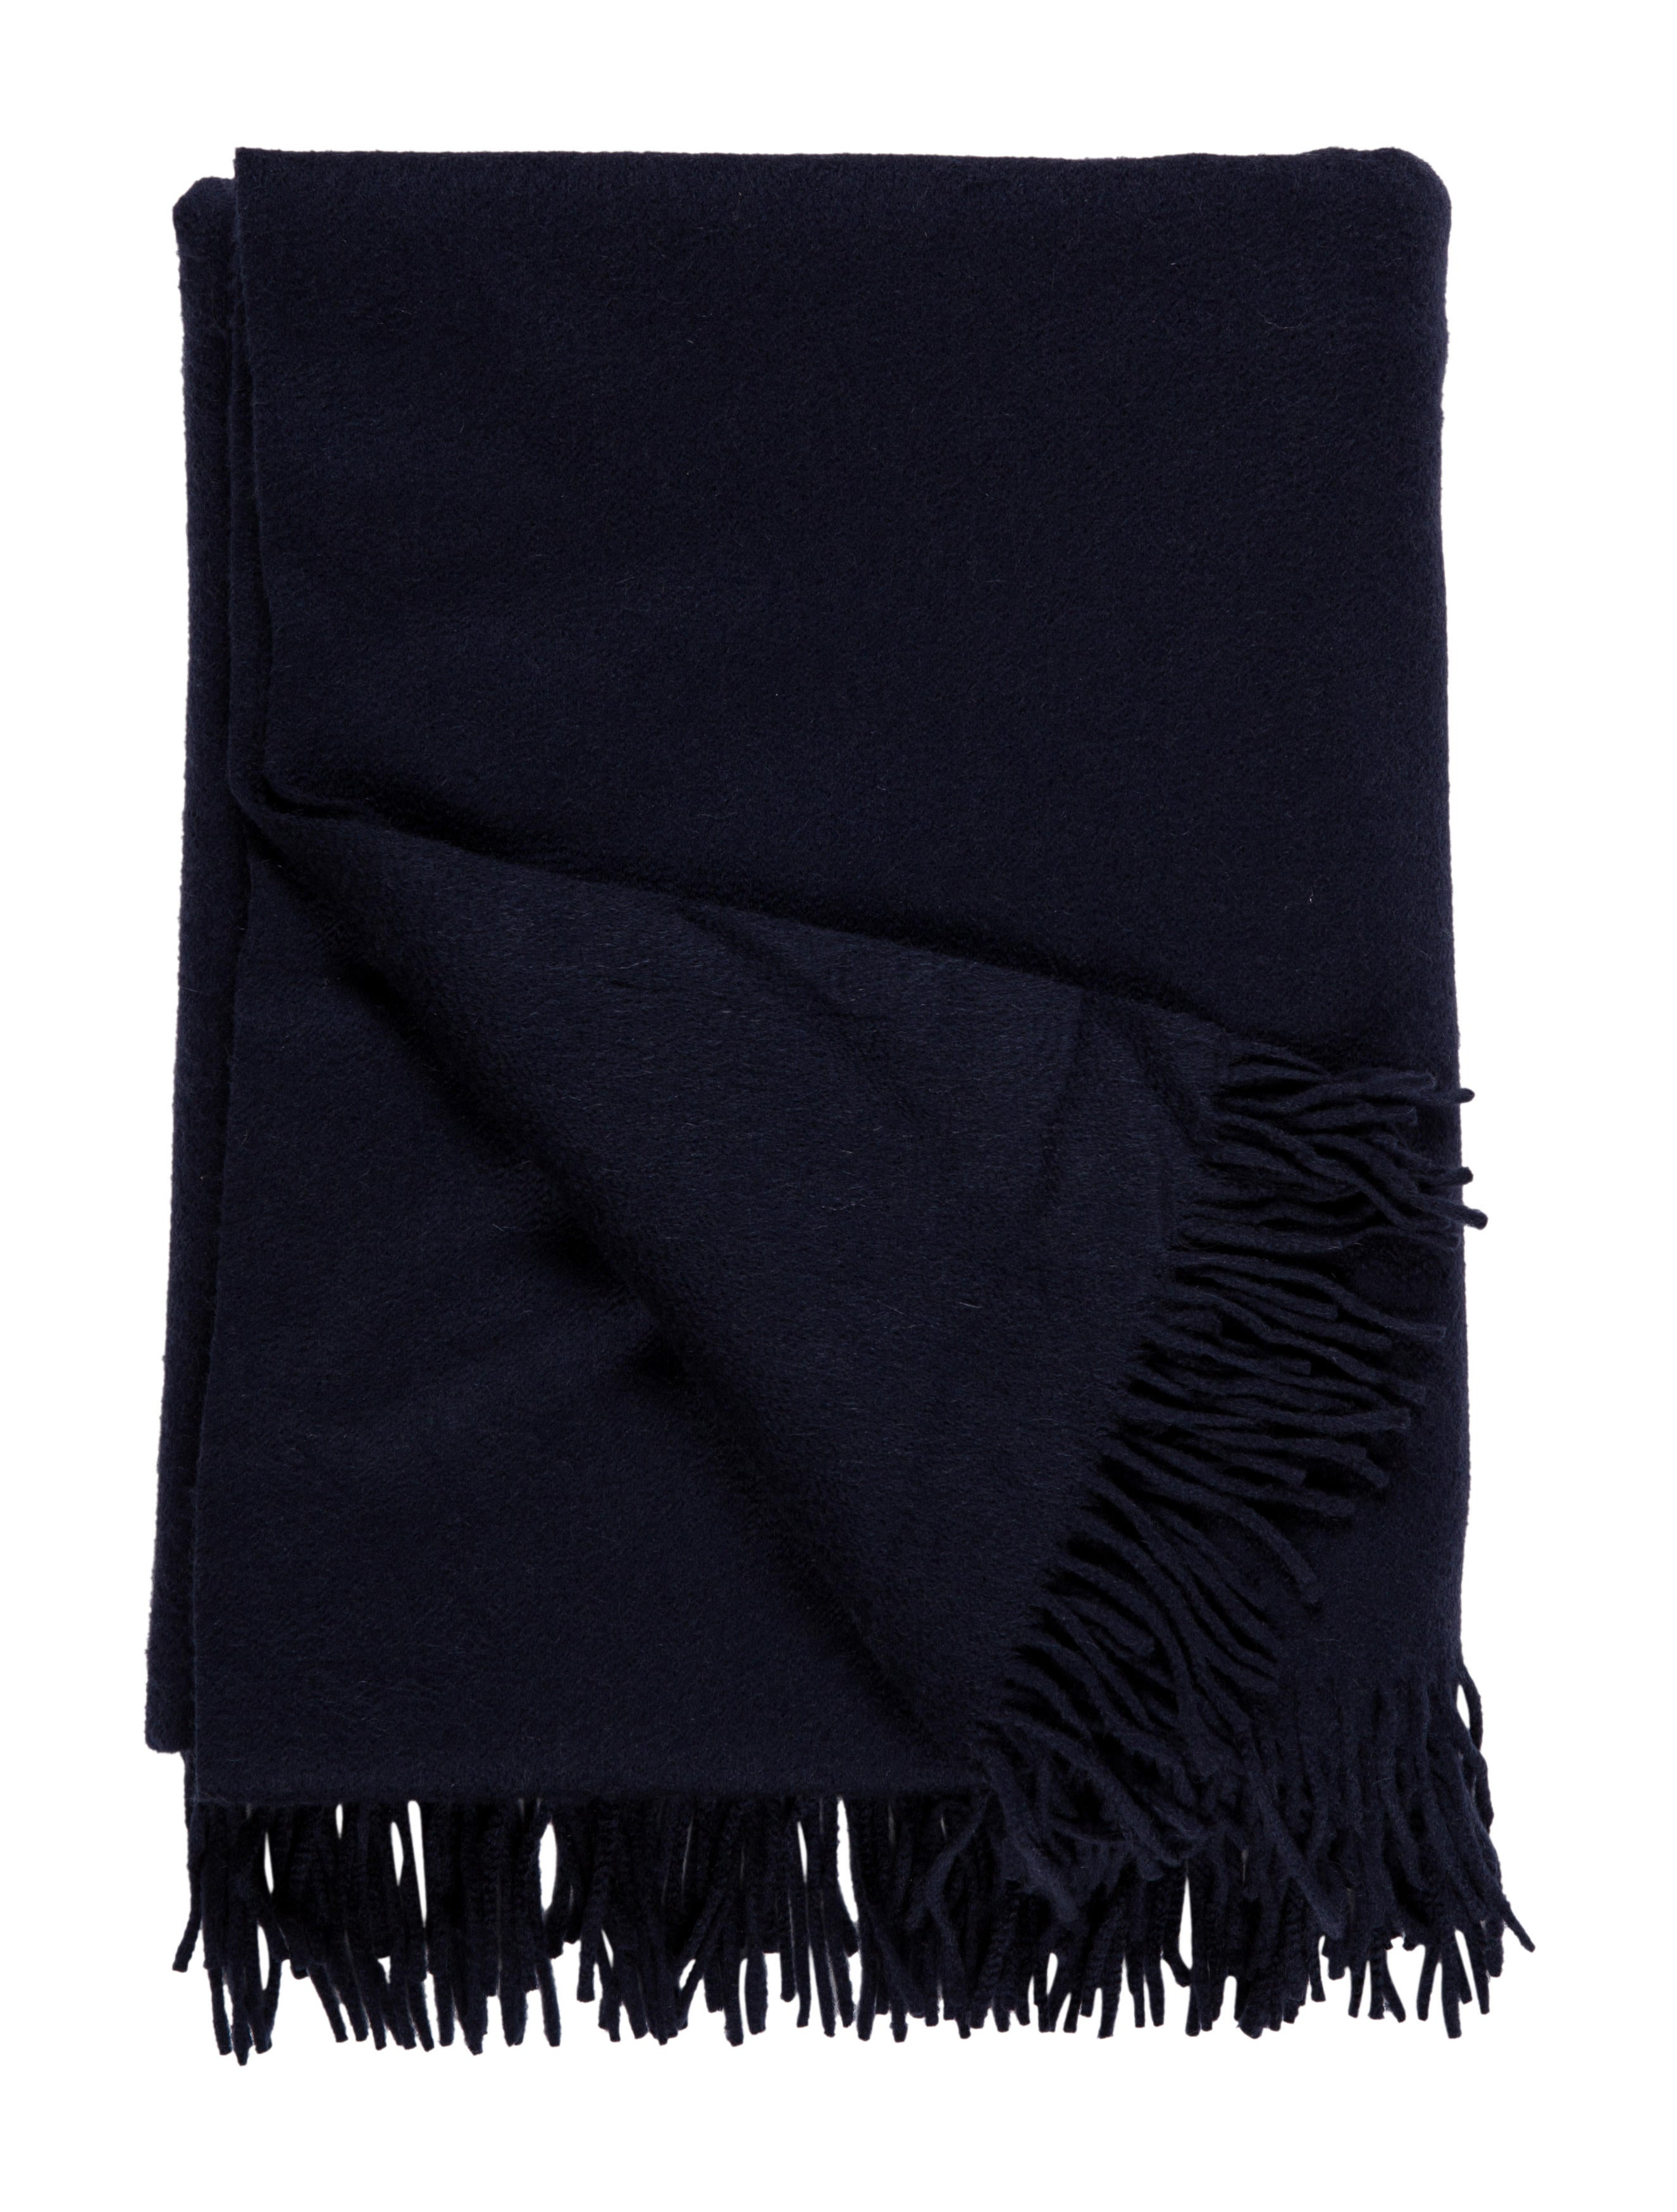 Frette Fringed Cashmere Throw Blanket - Pillows And Throws - FRT20227 The RealReal